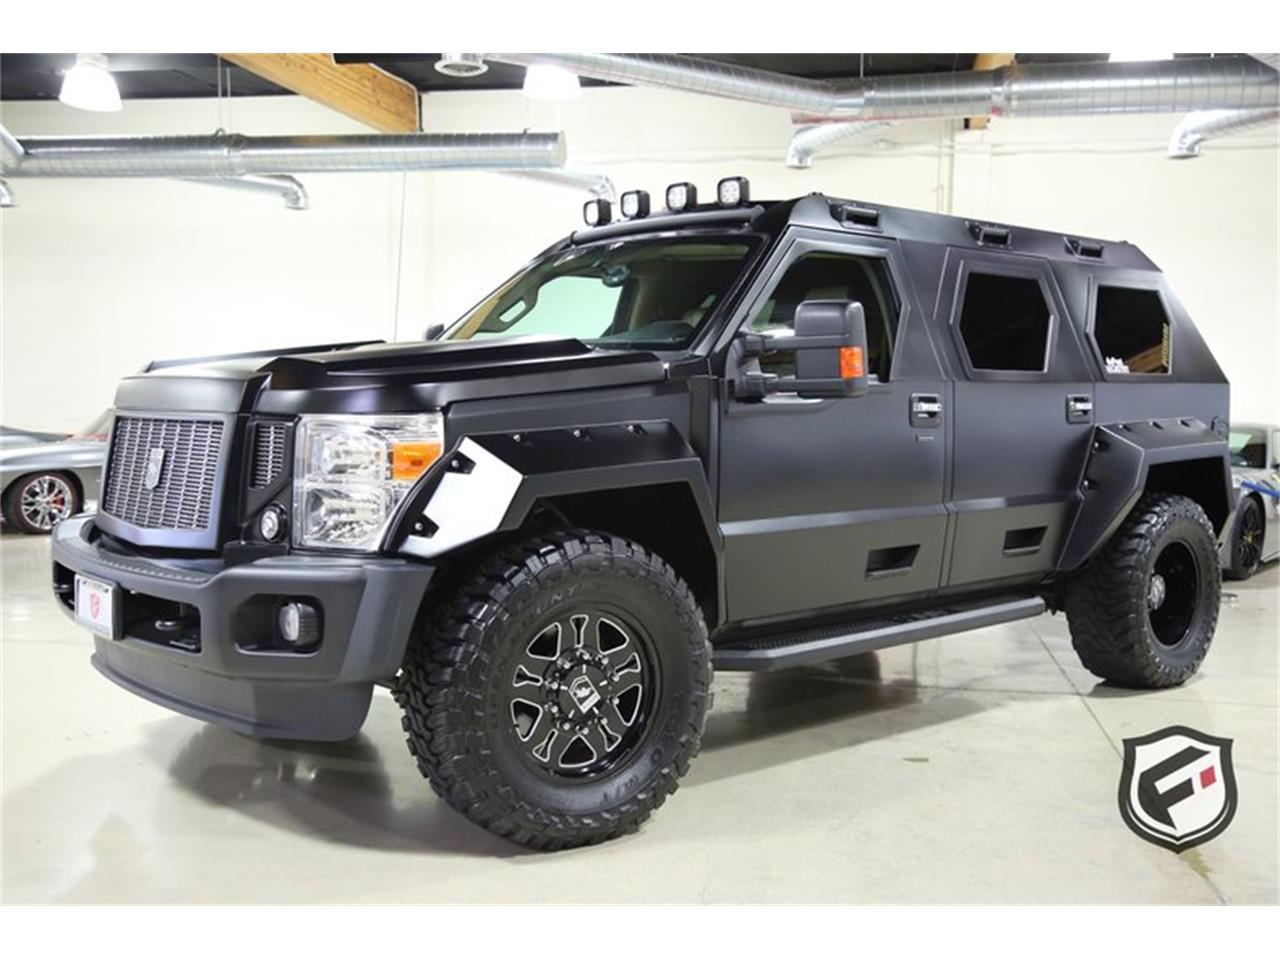 2015 USSV Rhino GX for sale in Chatsworth, CA – photo 8